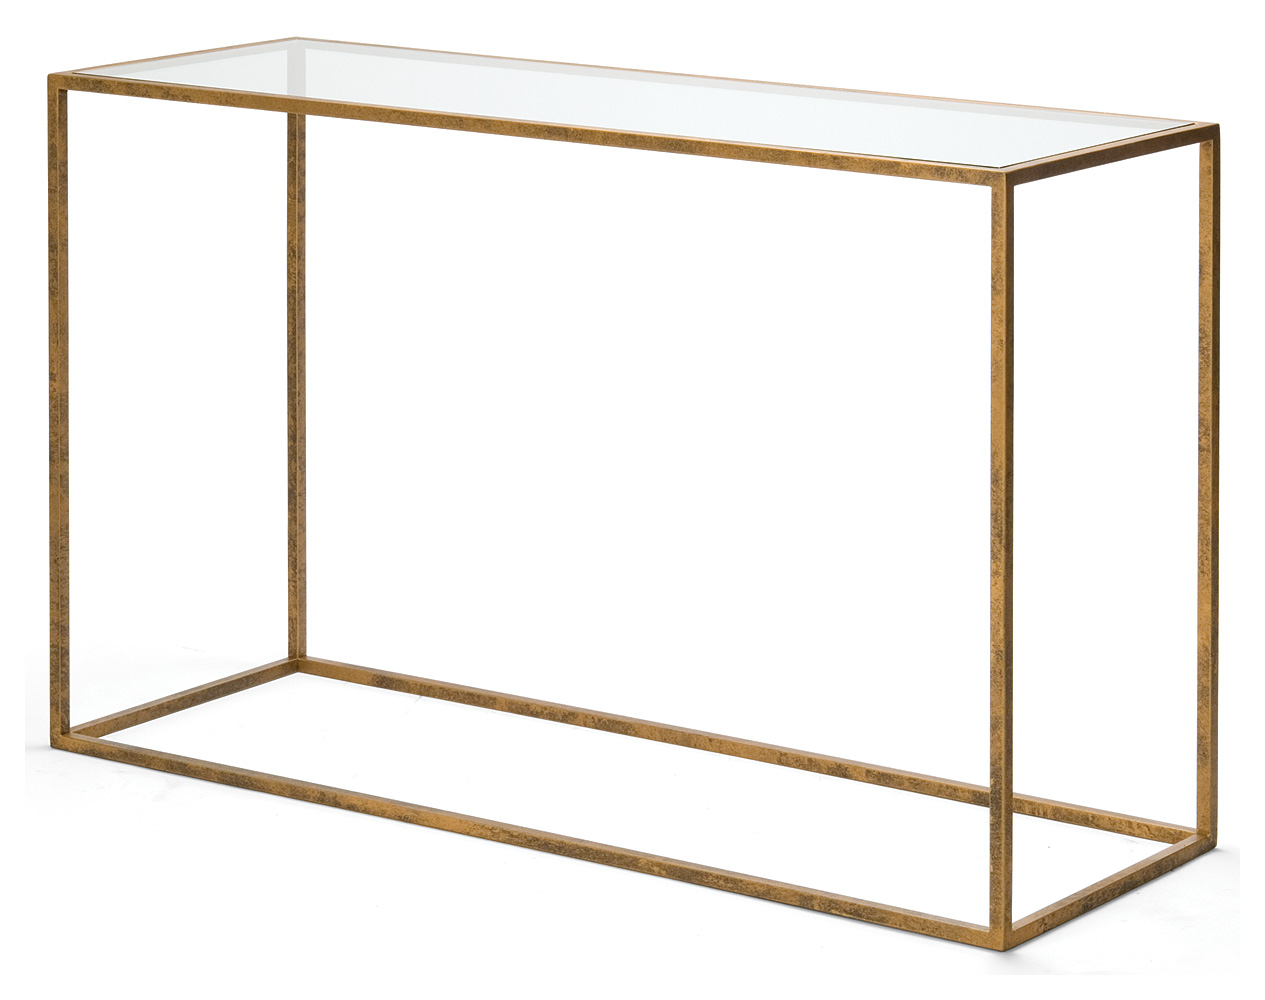 Upton console table console tables furniture decorus furniture medium floretine gold with clear glass top 1100mm x 300mm x 850mm h 1600mm x 300mm x 850mm h geotapseo Choice Image